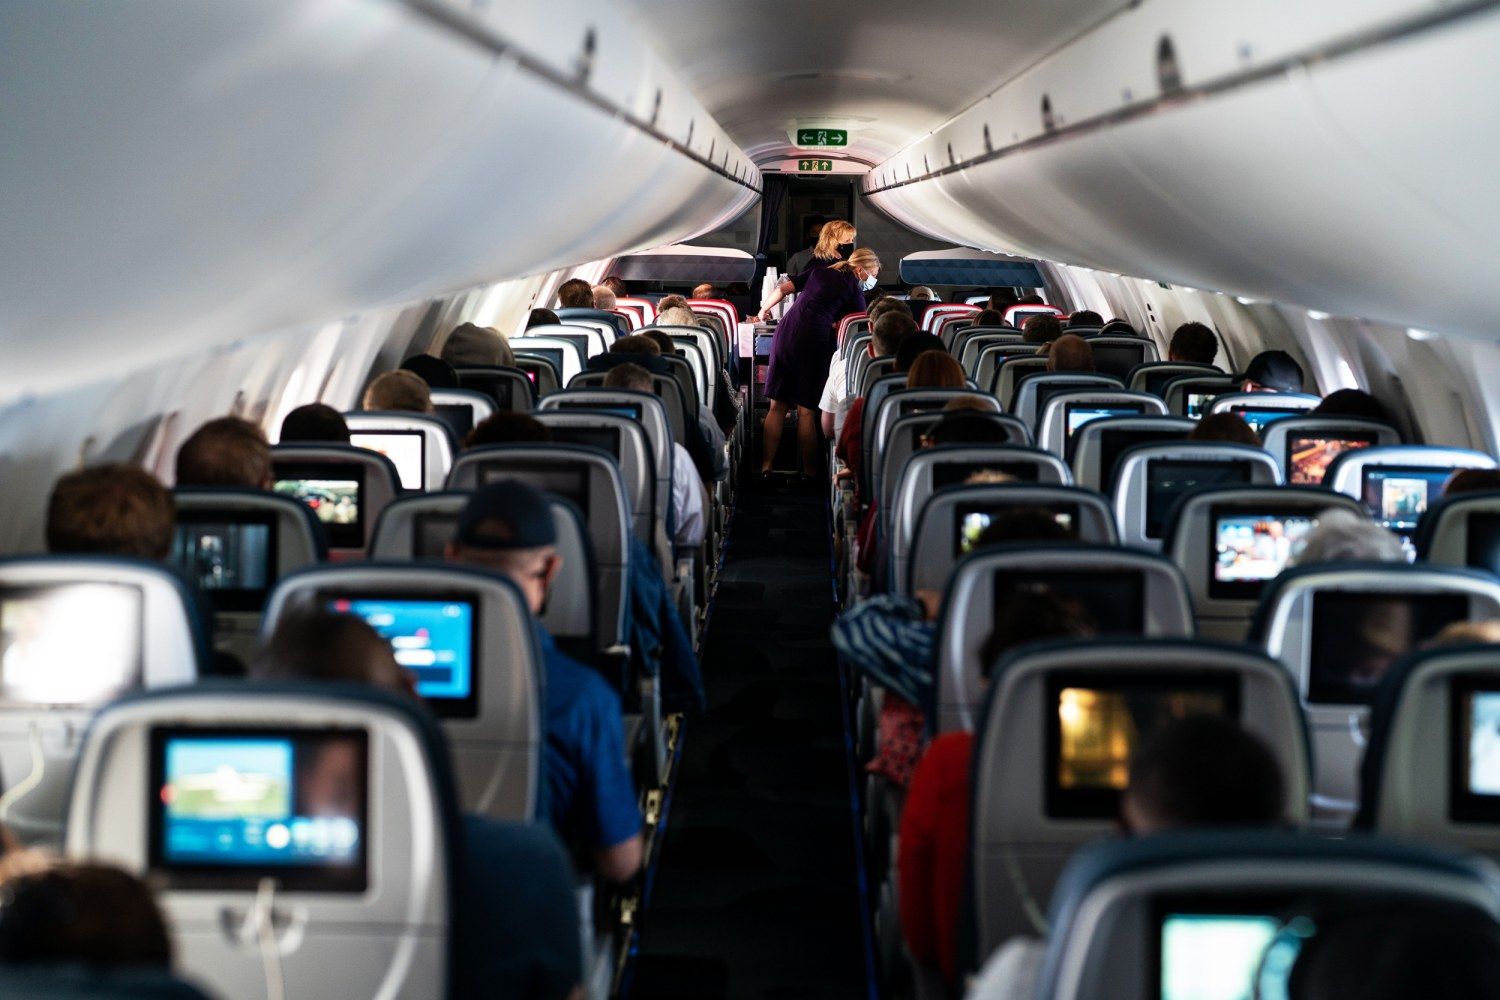 FAA proposes more than $60,000 in fines against unruly passengers amid mask fights